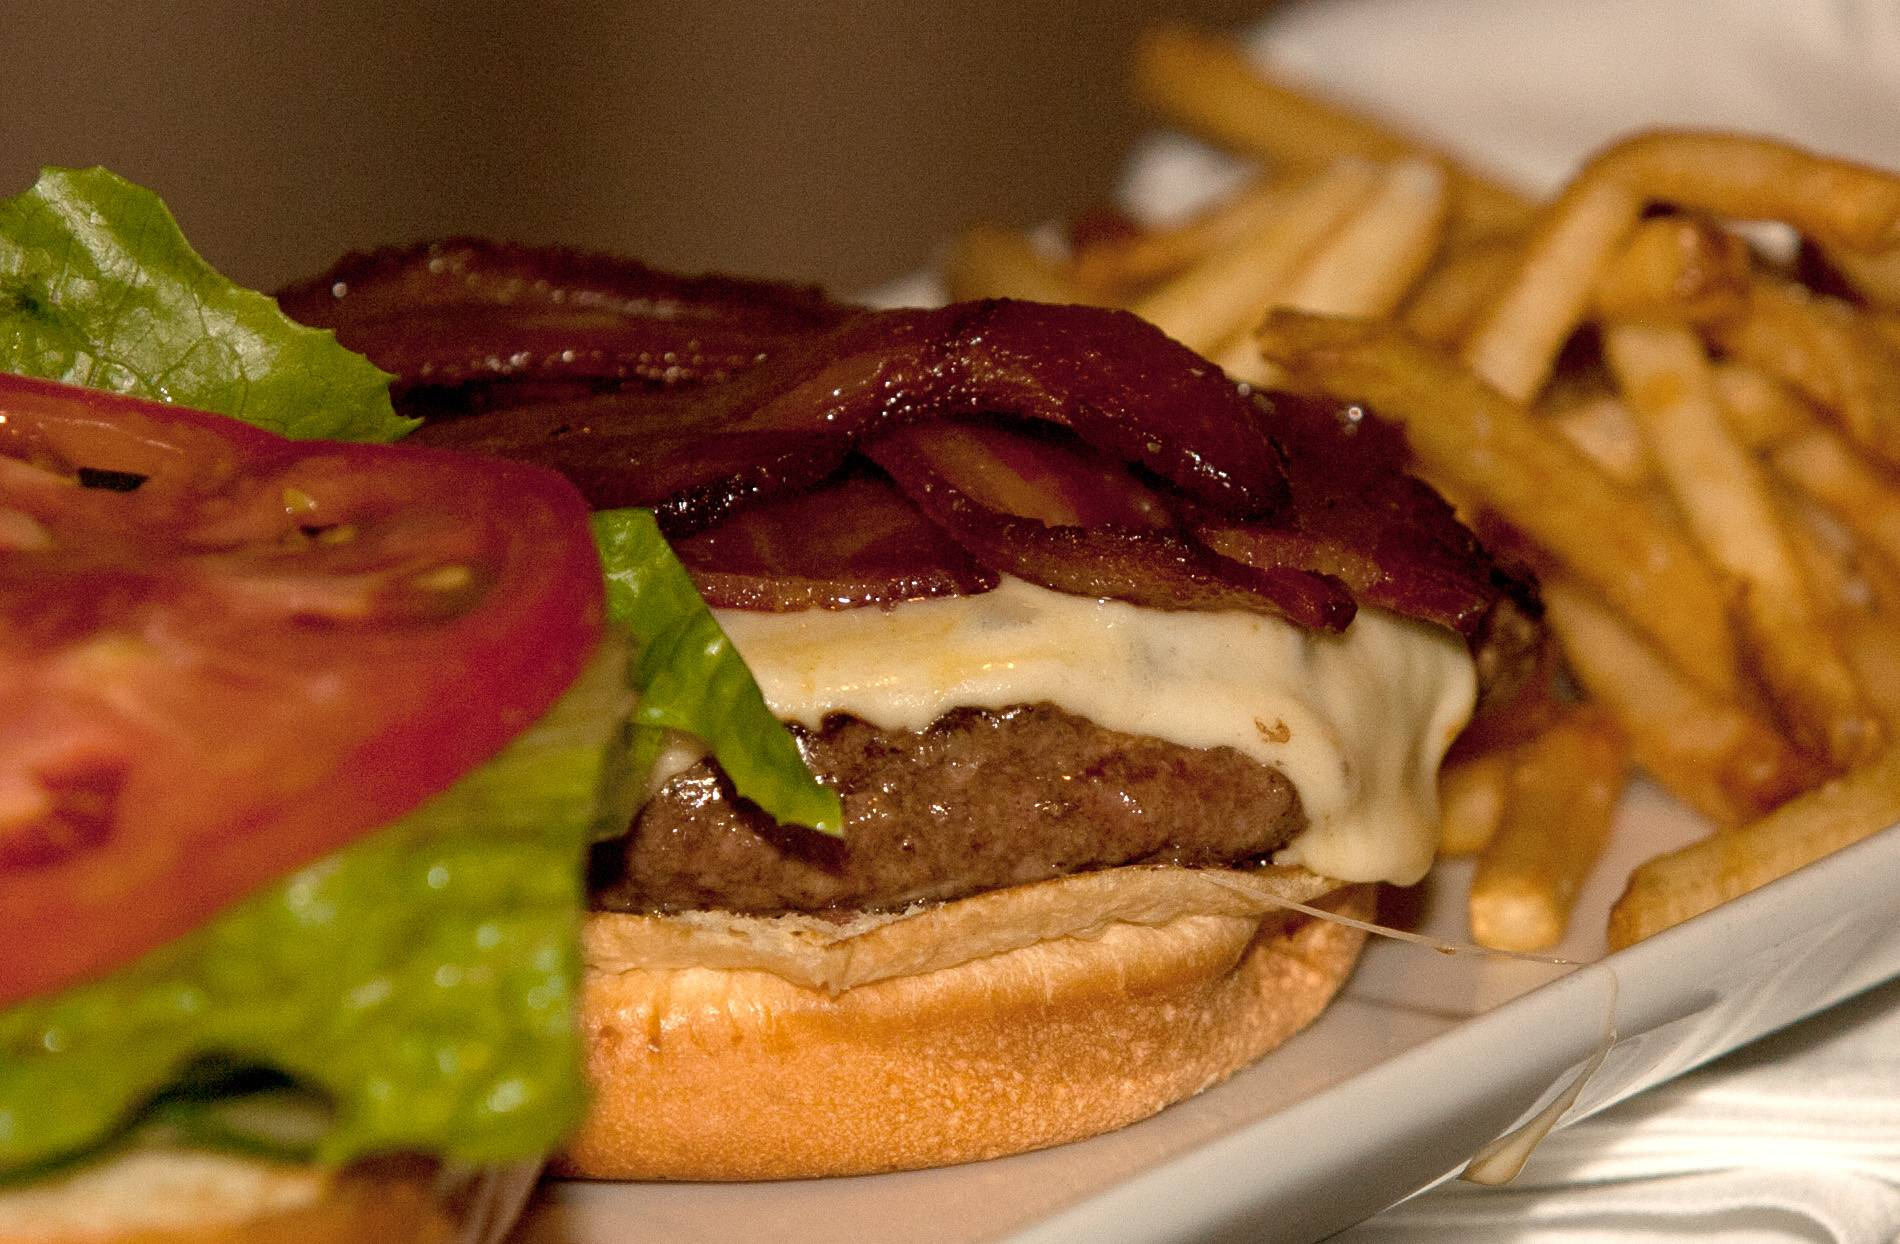 Neat Kitchen & Bar in Westmont emphasizes flavorful takes on bar favorites, including the bacon cheeseburger.